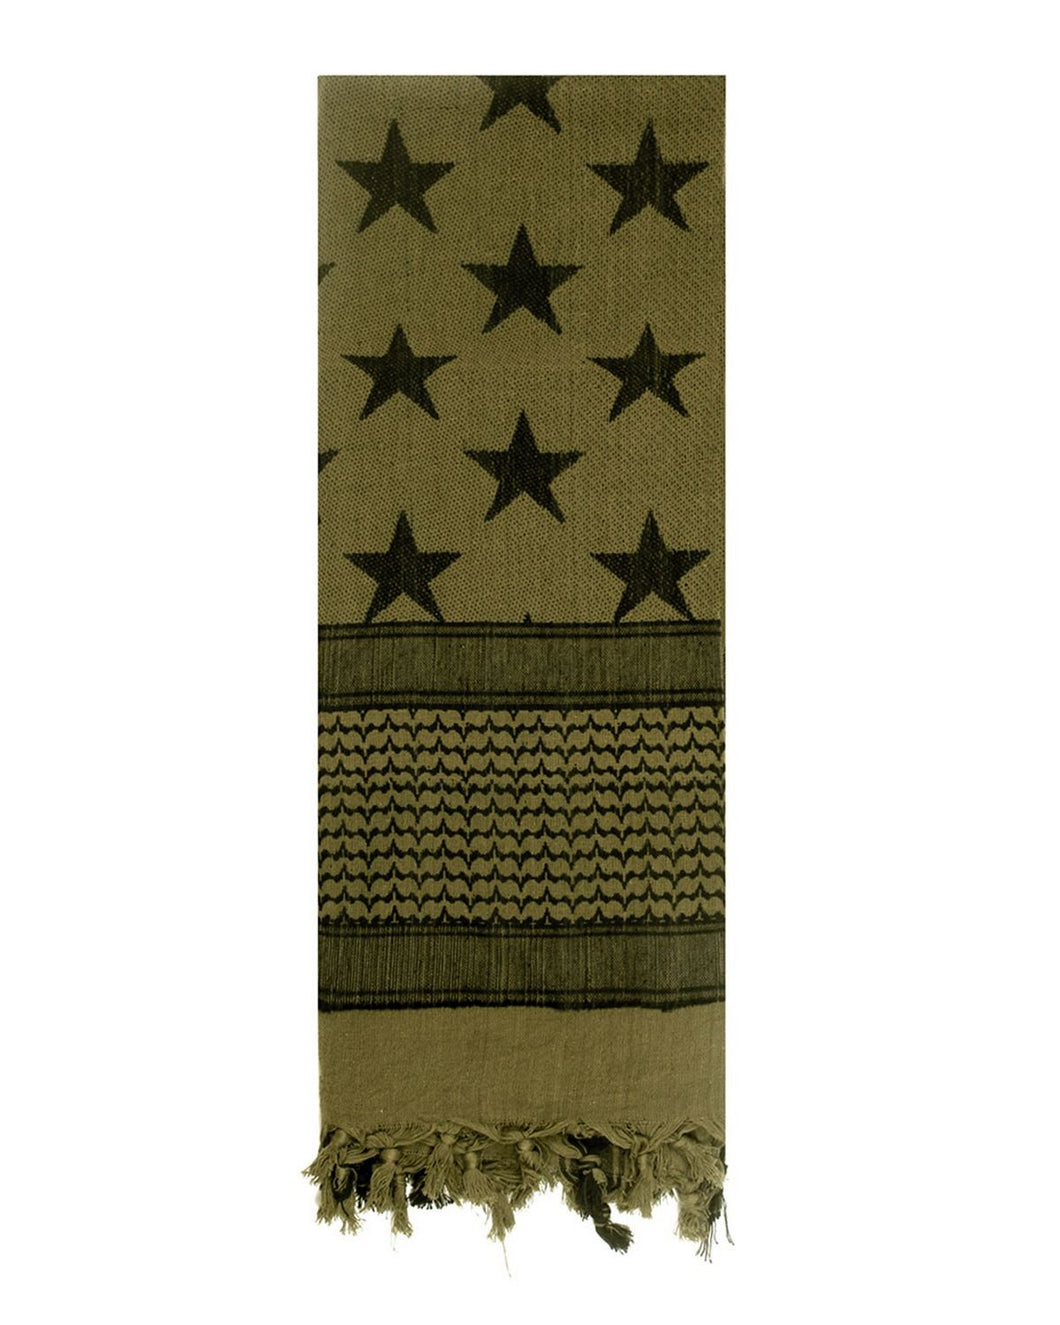 Rothco - Stars and Stripes Shemagh Tactical Desert Scarf - Olive Drab - 8864